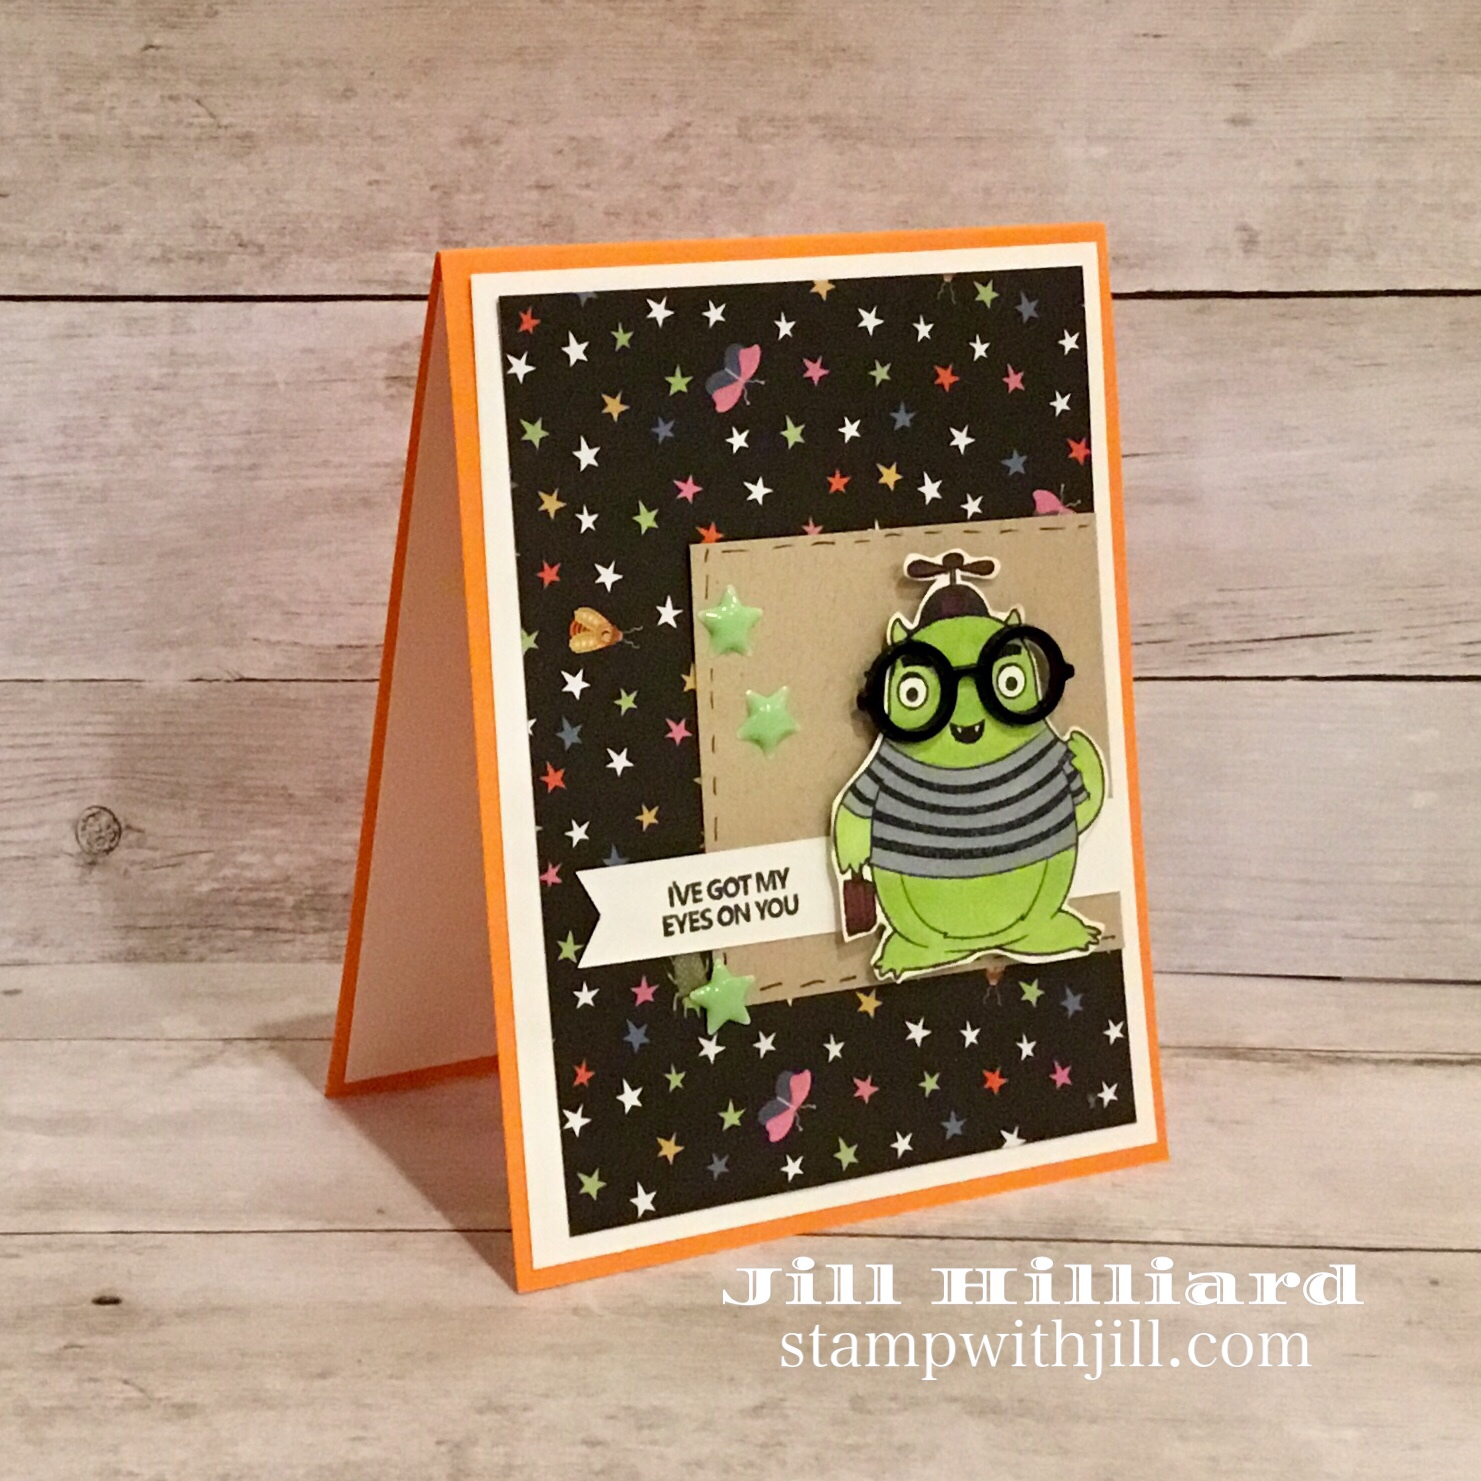 eyes-on-you-fun-stampers-journey-fsj-halloween-card-2